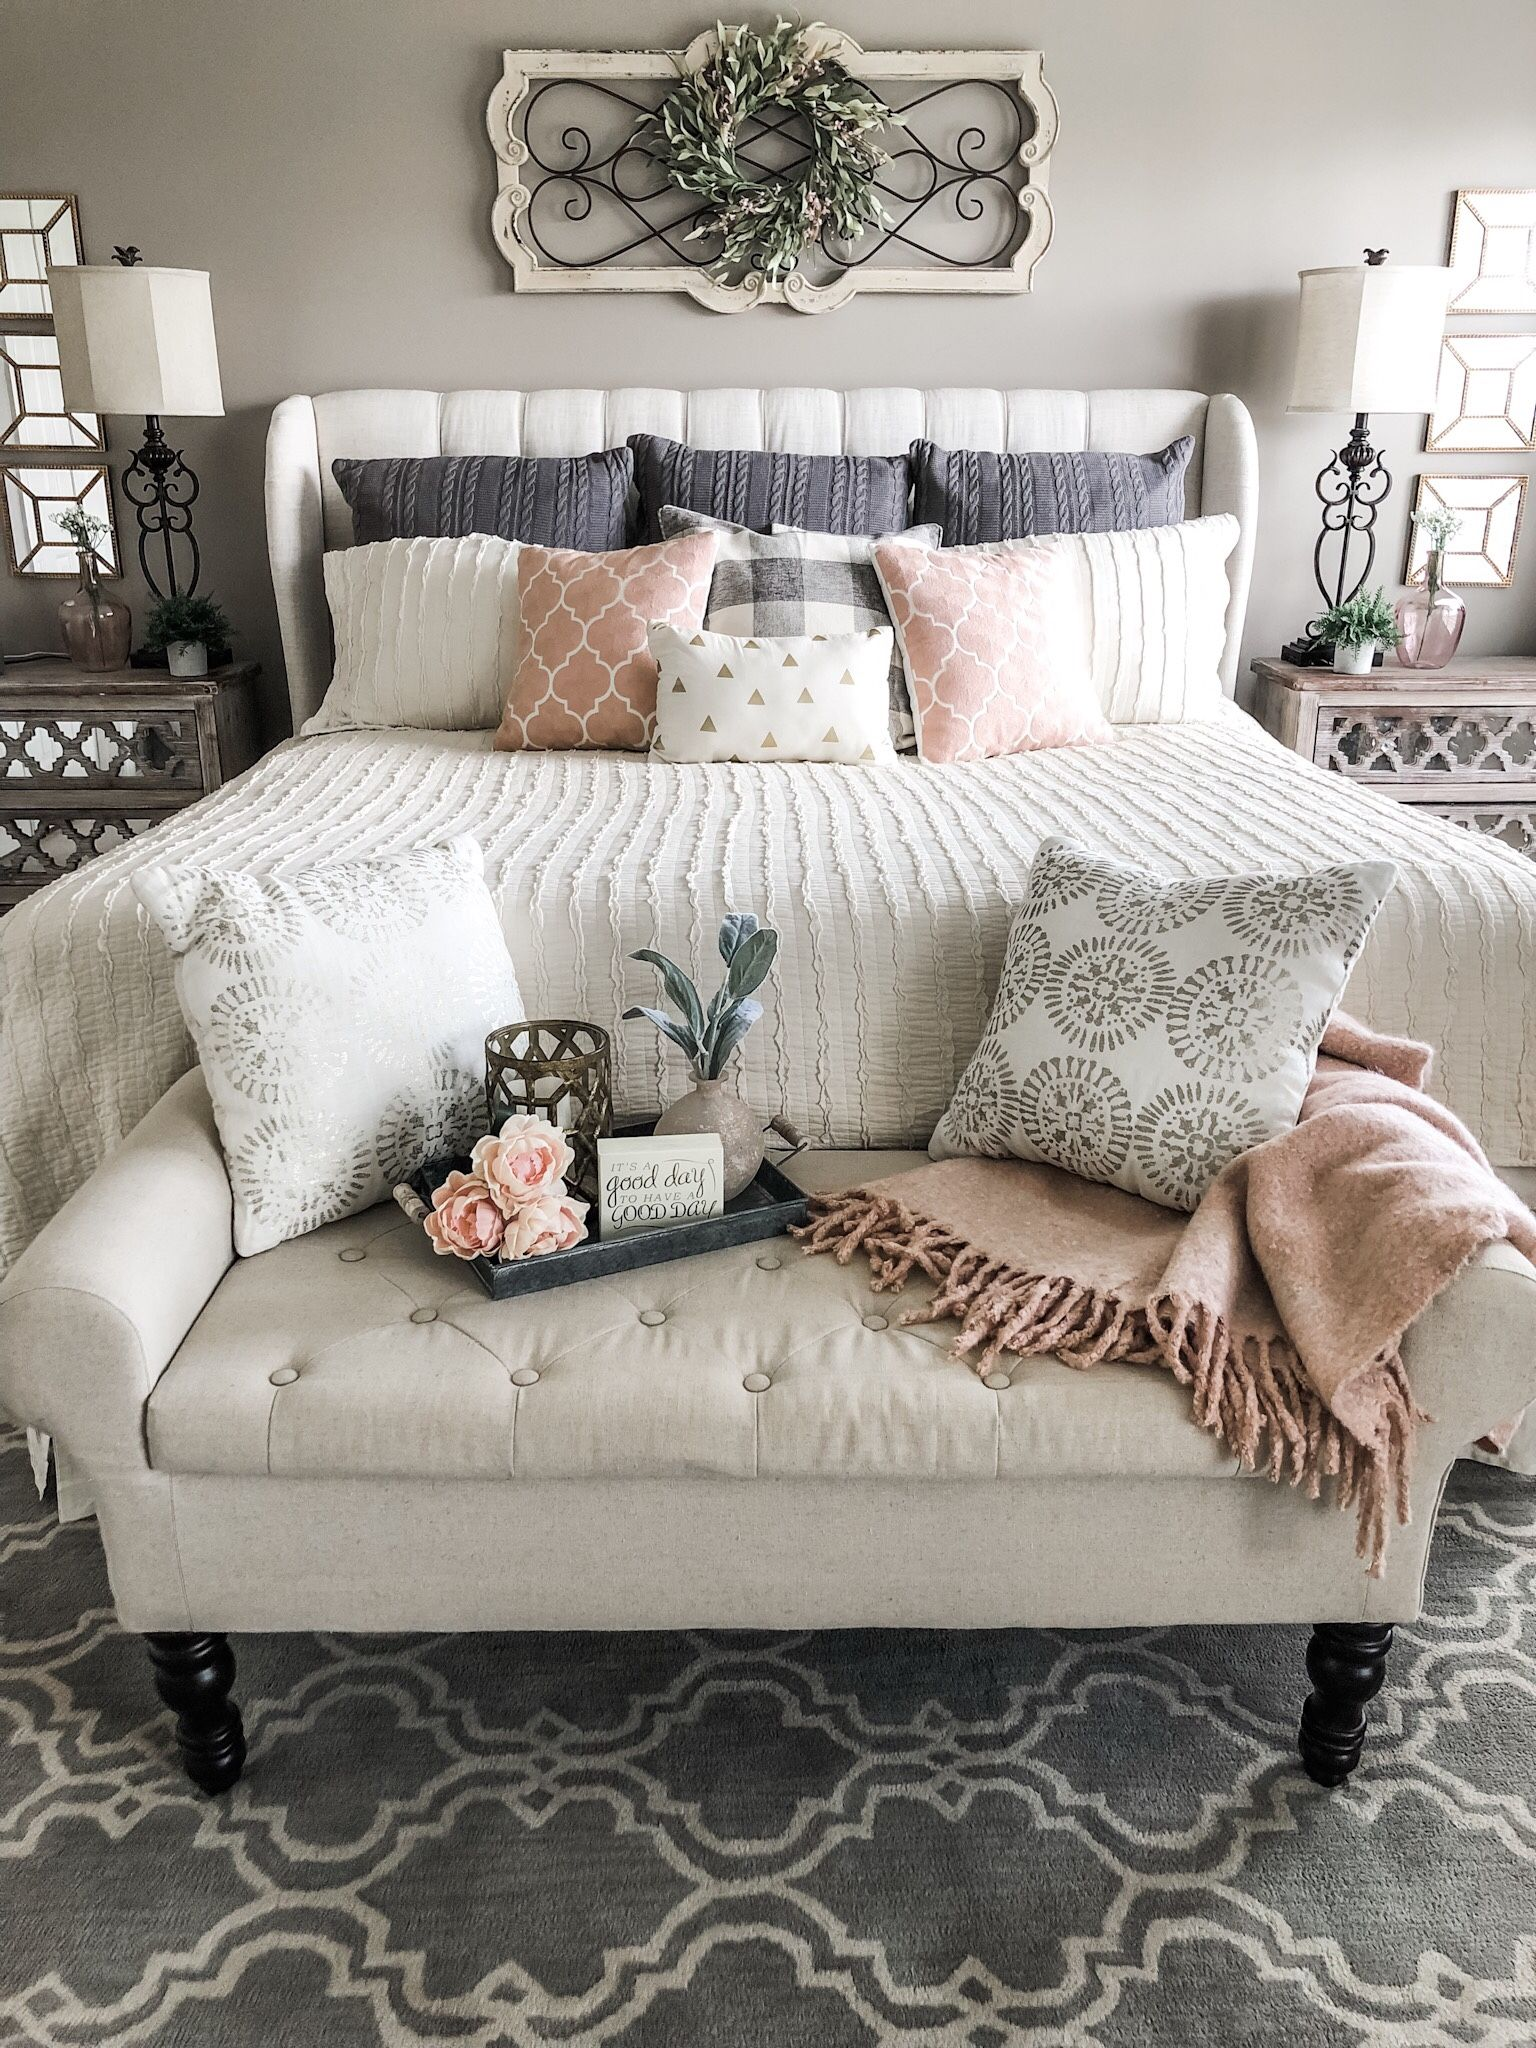 Simple ideas for adding blush accents to your decor! | Wilshire Collections